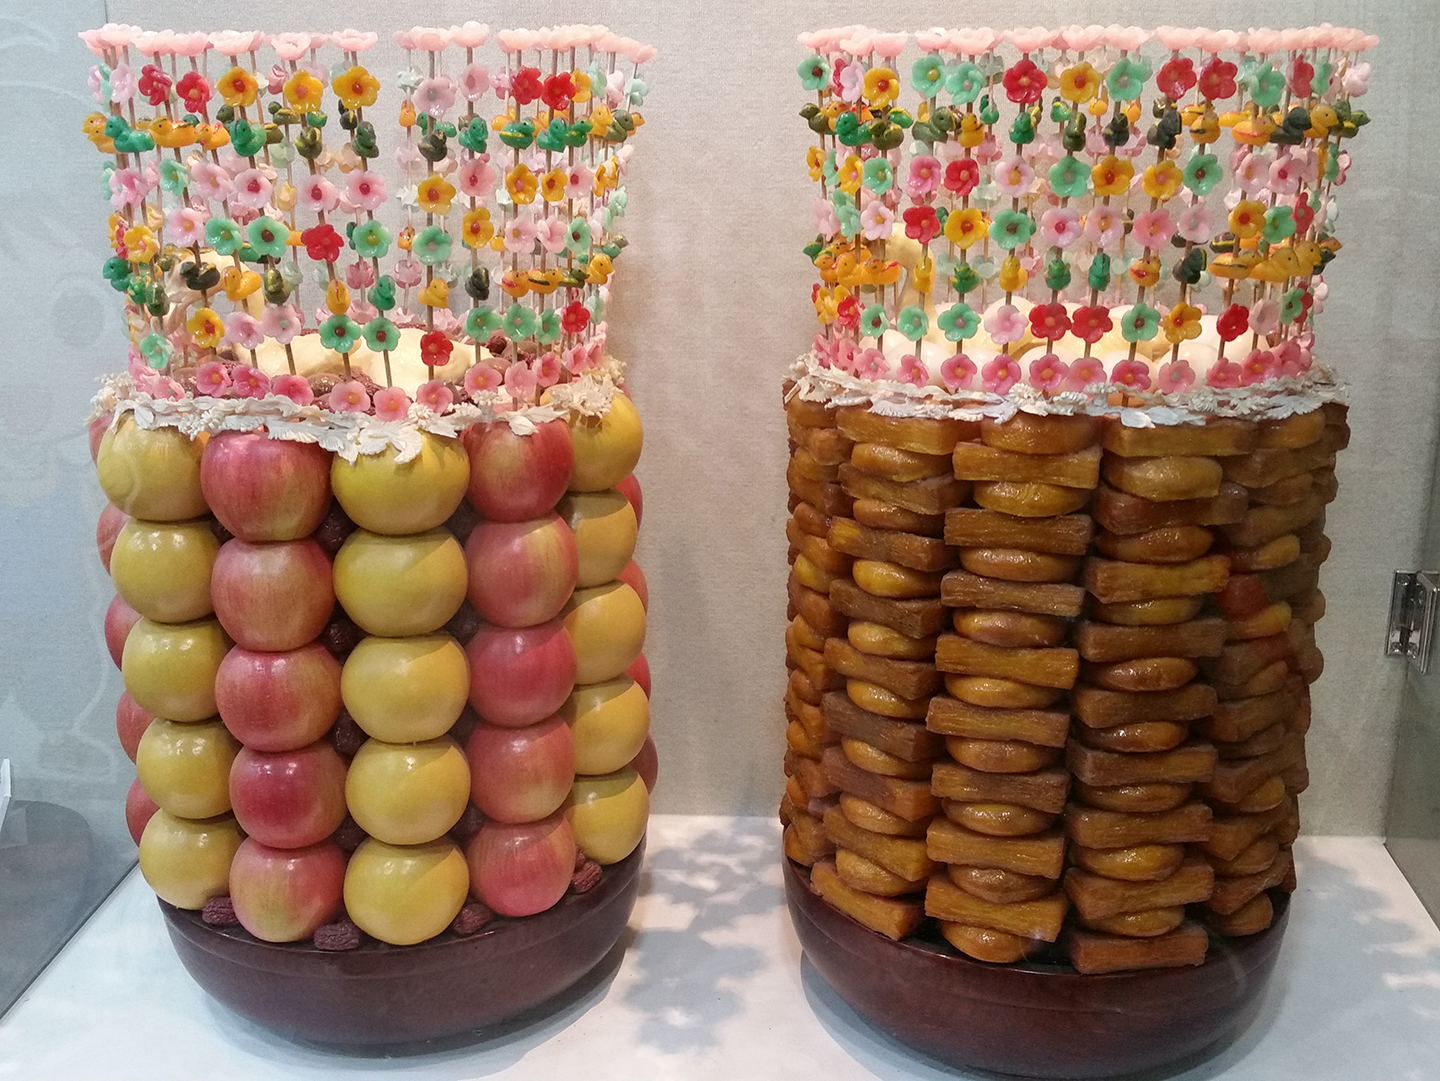 Tteok Museum - Wedding Fruit and Yakhwa Display